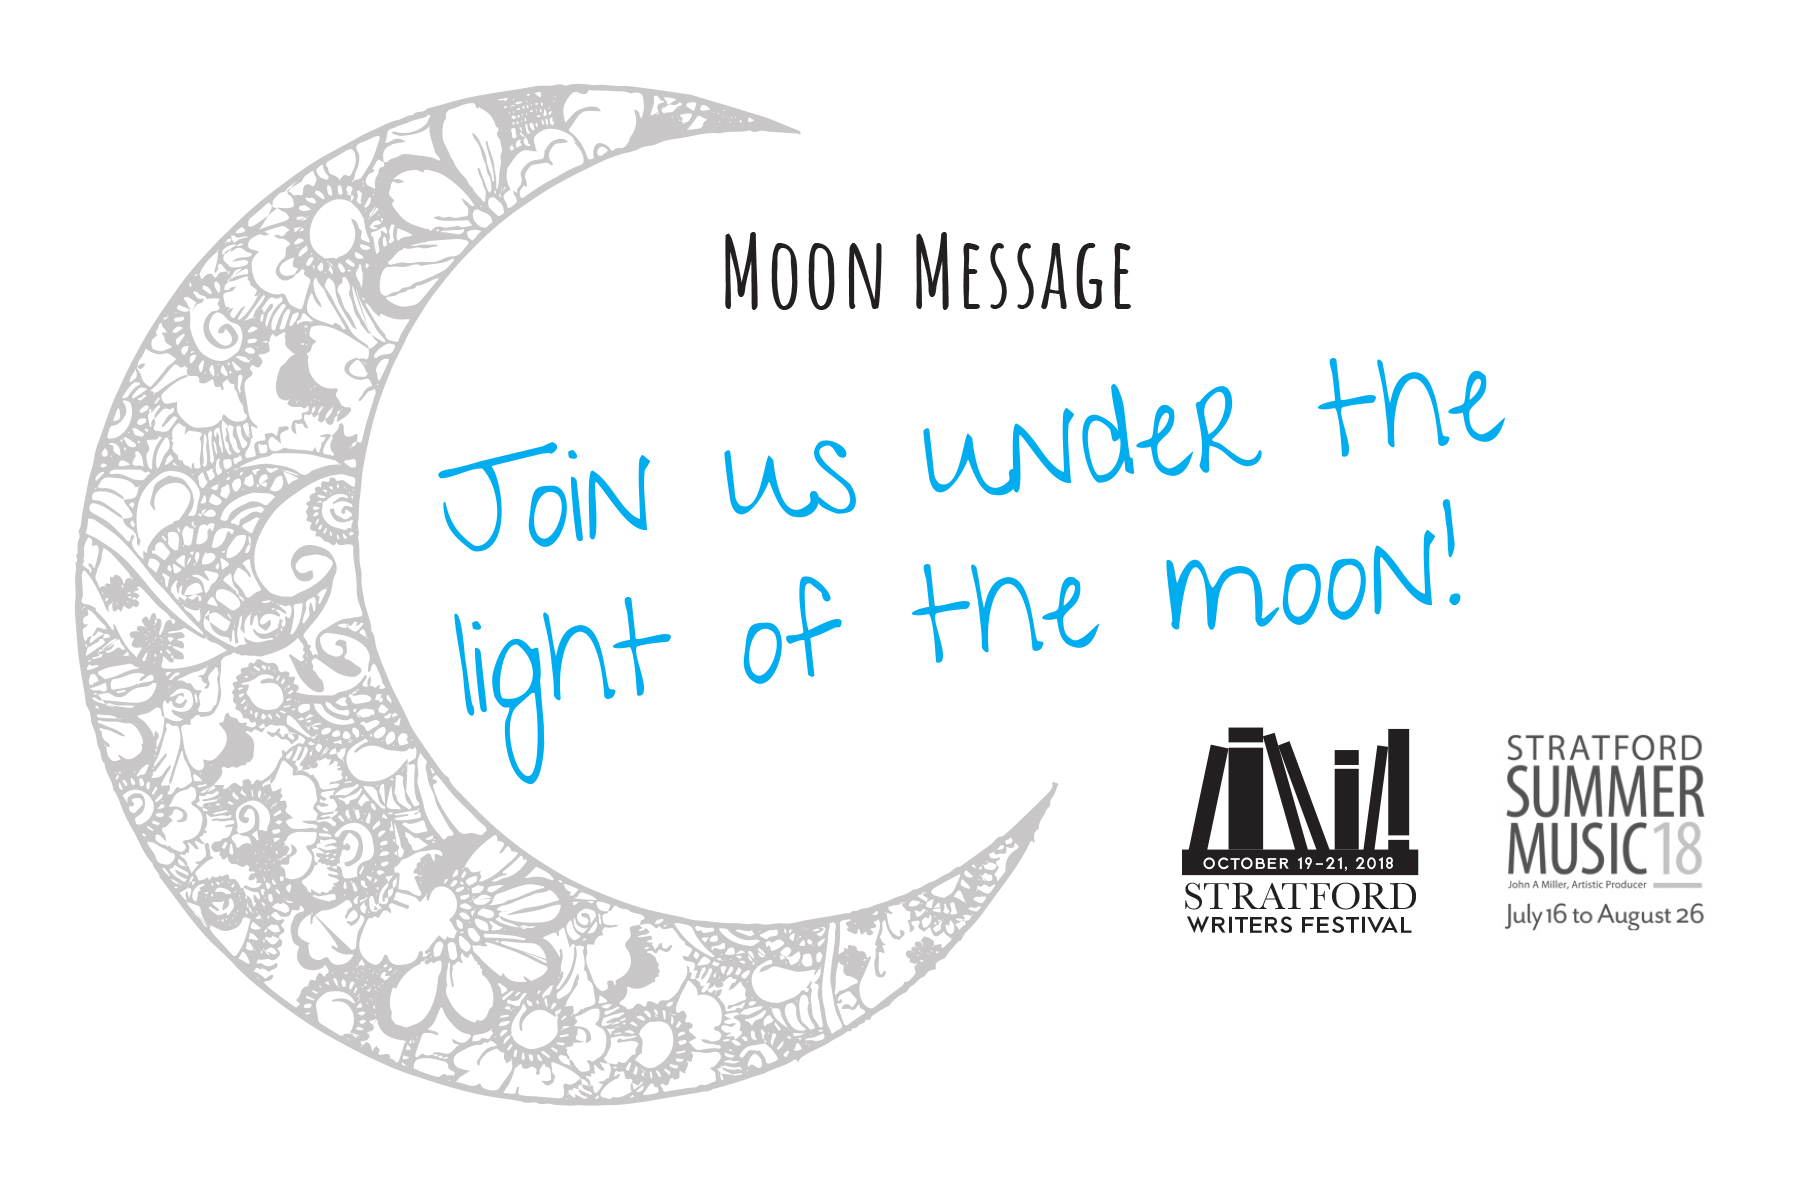 Stratford Writers Festival Moon Message Event